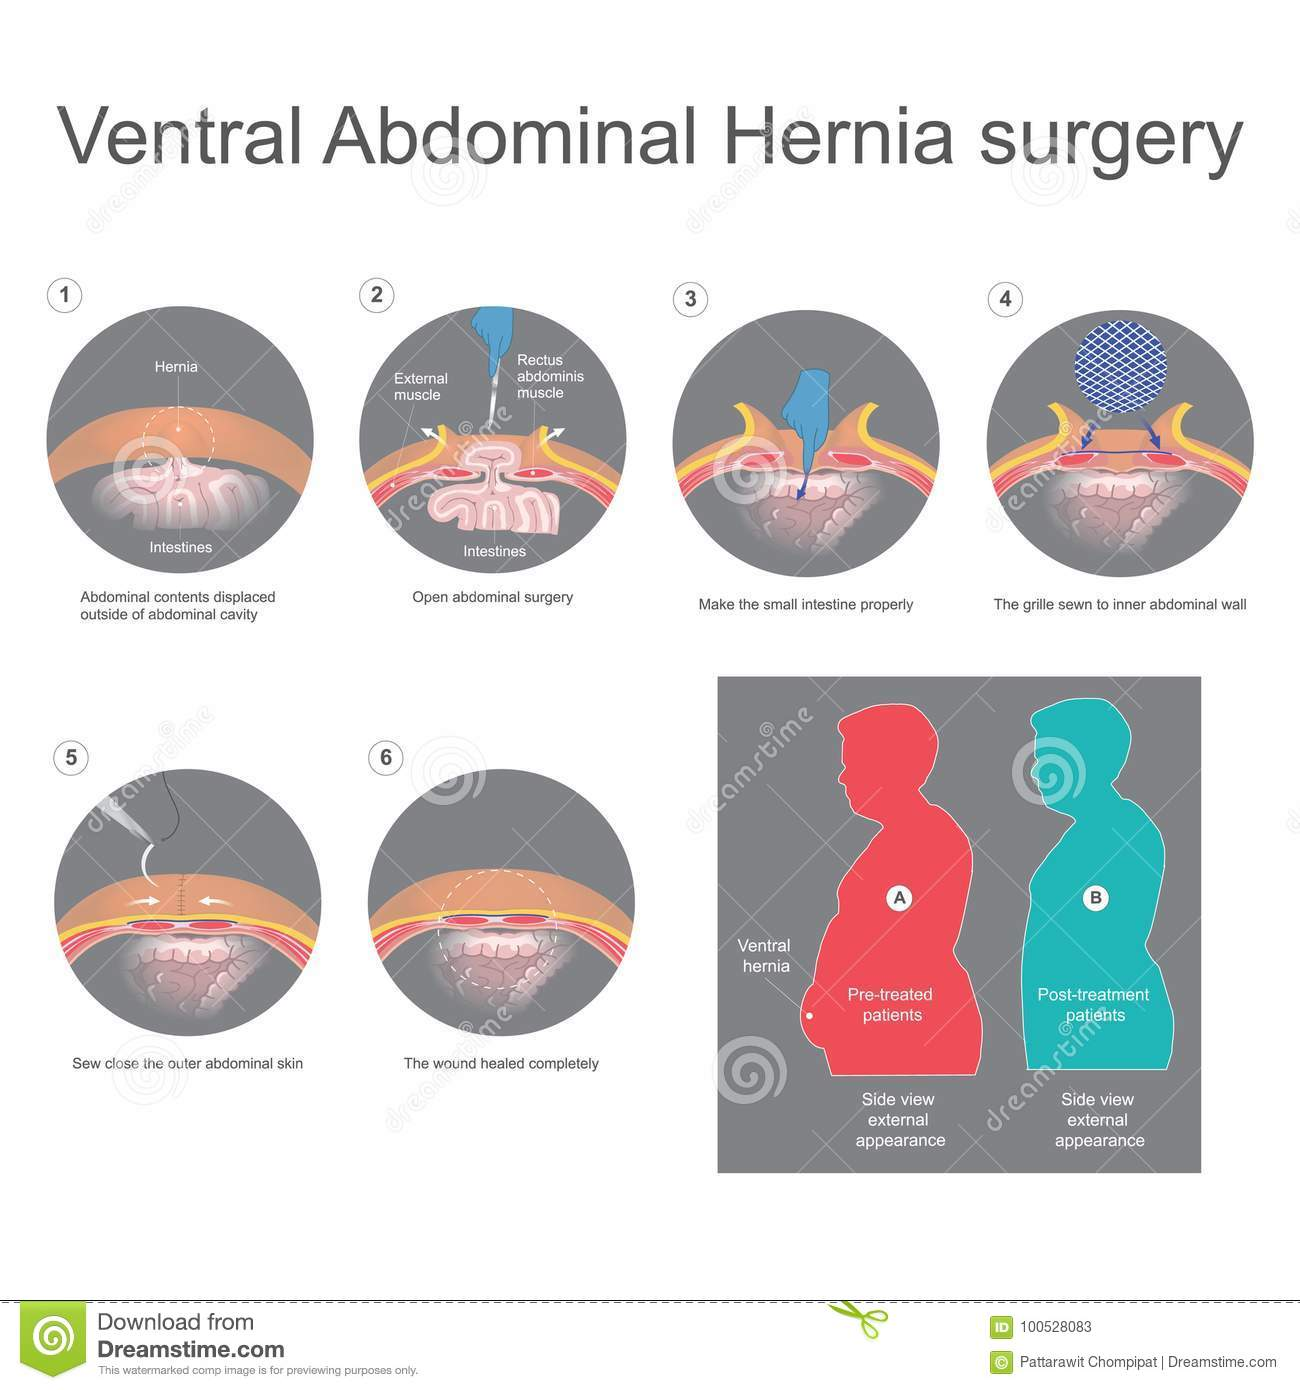 Ventral Hernia Is A Bulge Of Tissues Through An Opening Of